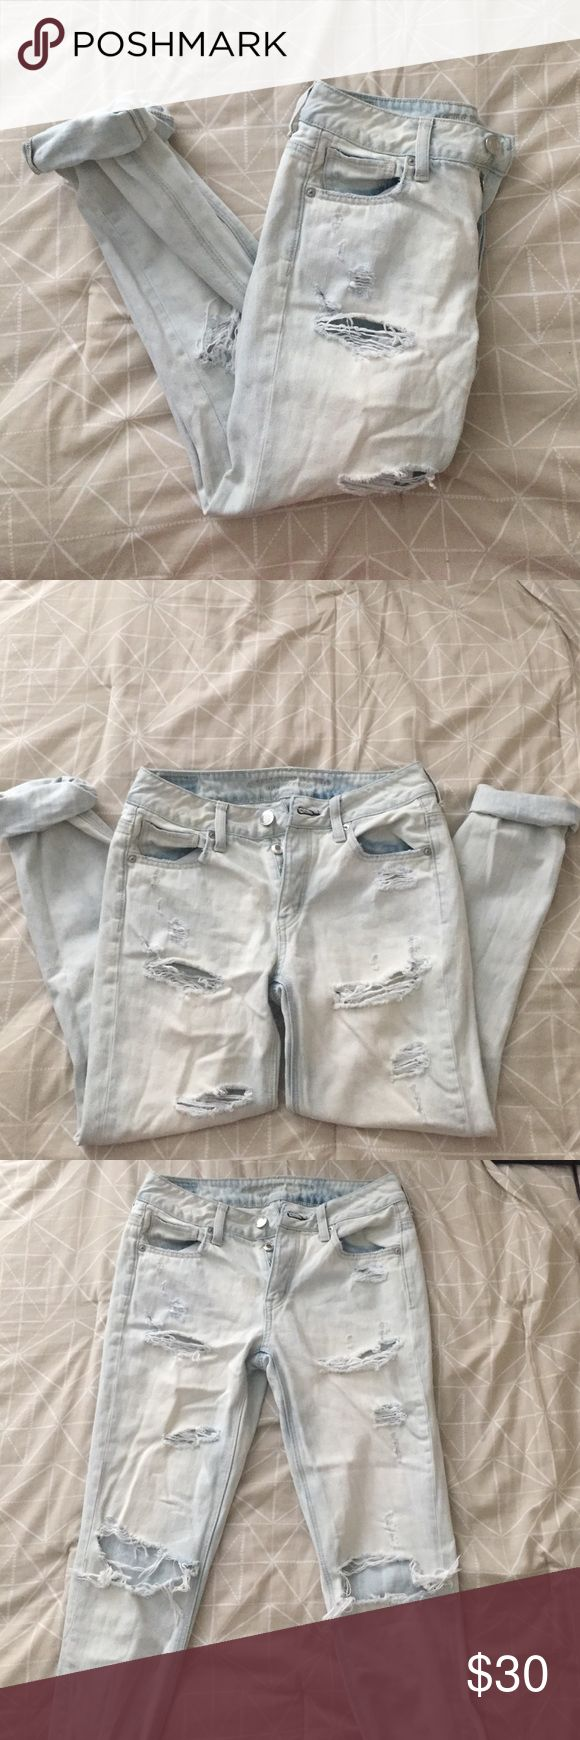 """NWOT AE """"tomgirl"""" (boyfriend fit) jeans So sad to part with these but they're just too big. I purchased them online not realizing that in this fit I needed to size down. The tag reads 0R (regular length) but they'll fit best on someone who's a 2-4. I've worn them around the house so there is no tag but they've never left my room. They need a new home ☺️❤️ American Eagle Outfitters Jeans Boyfriend"""